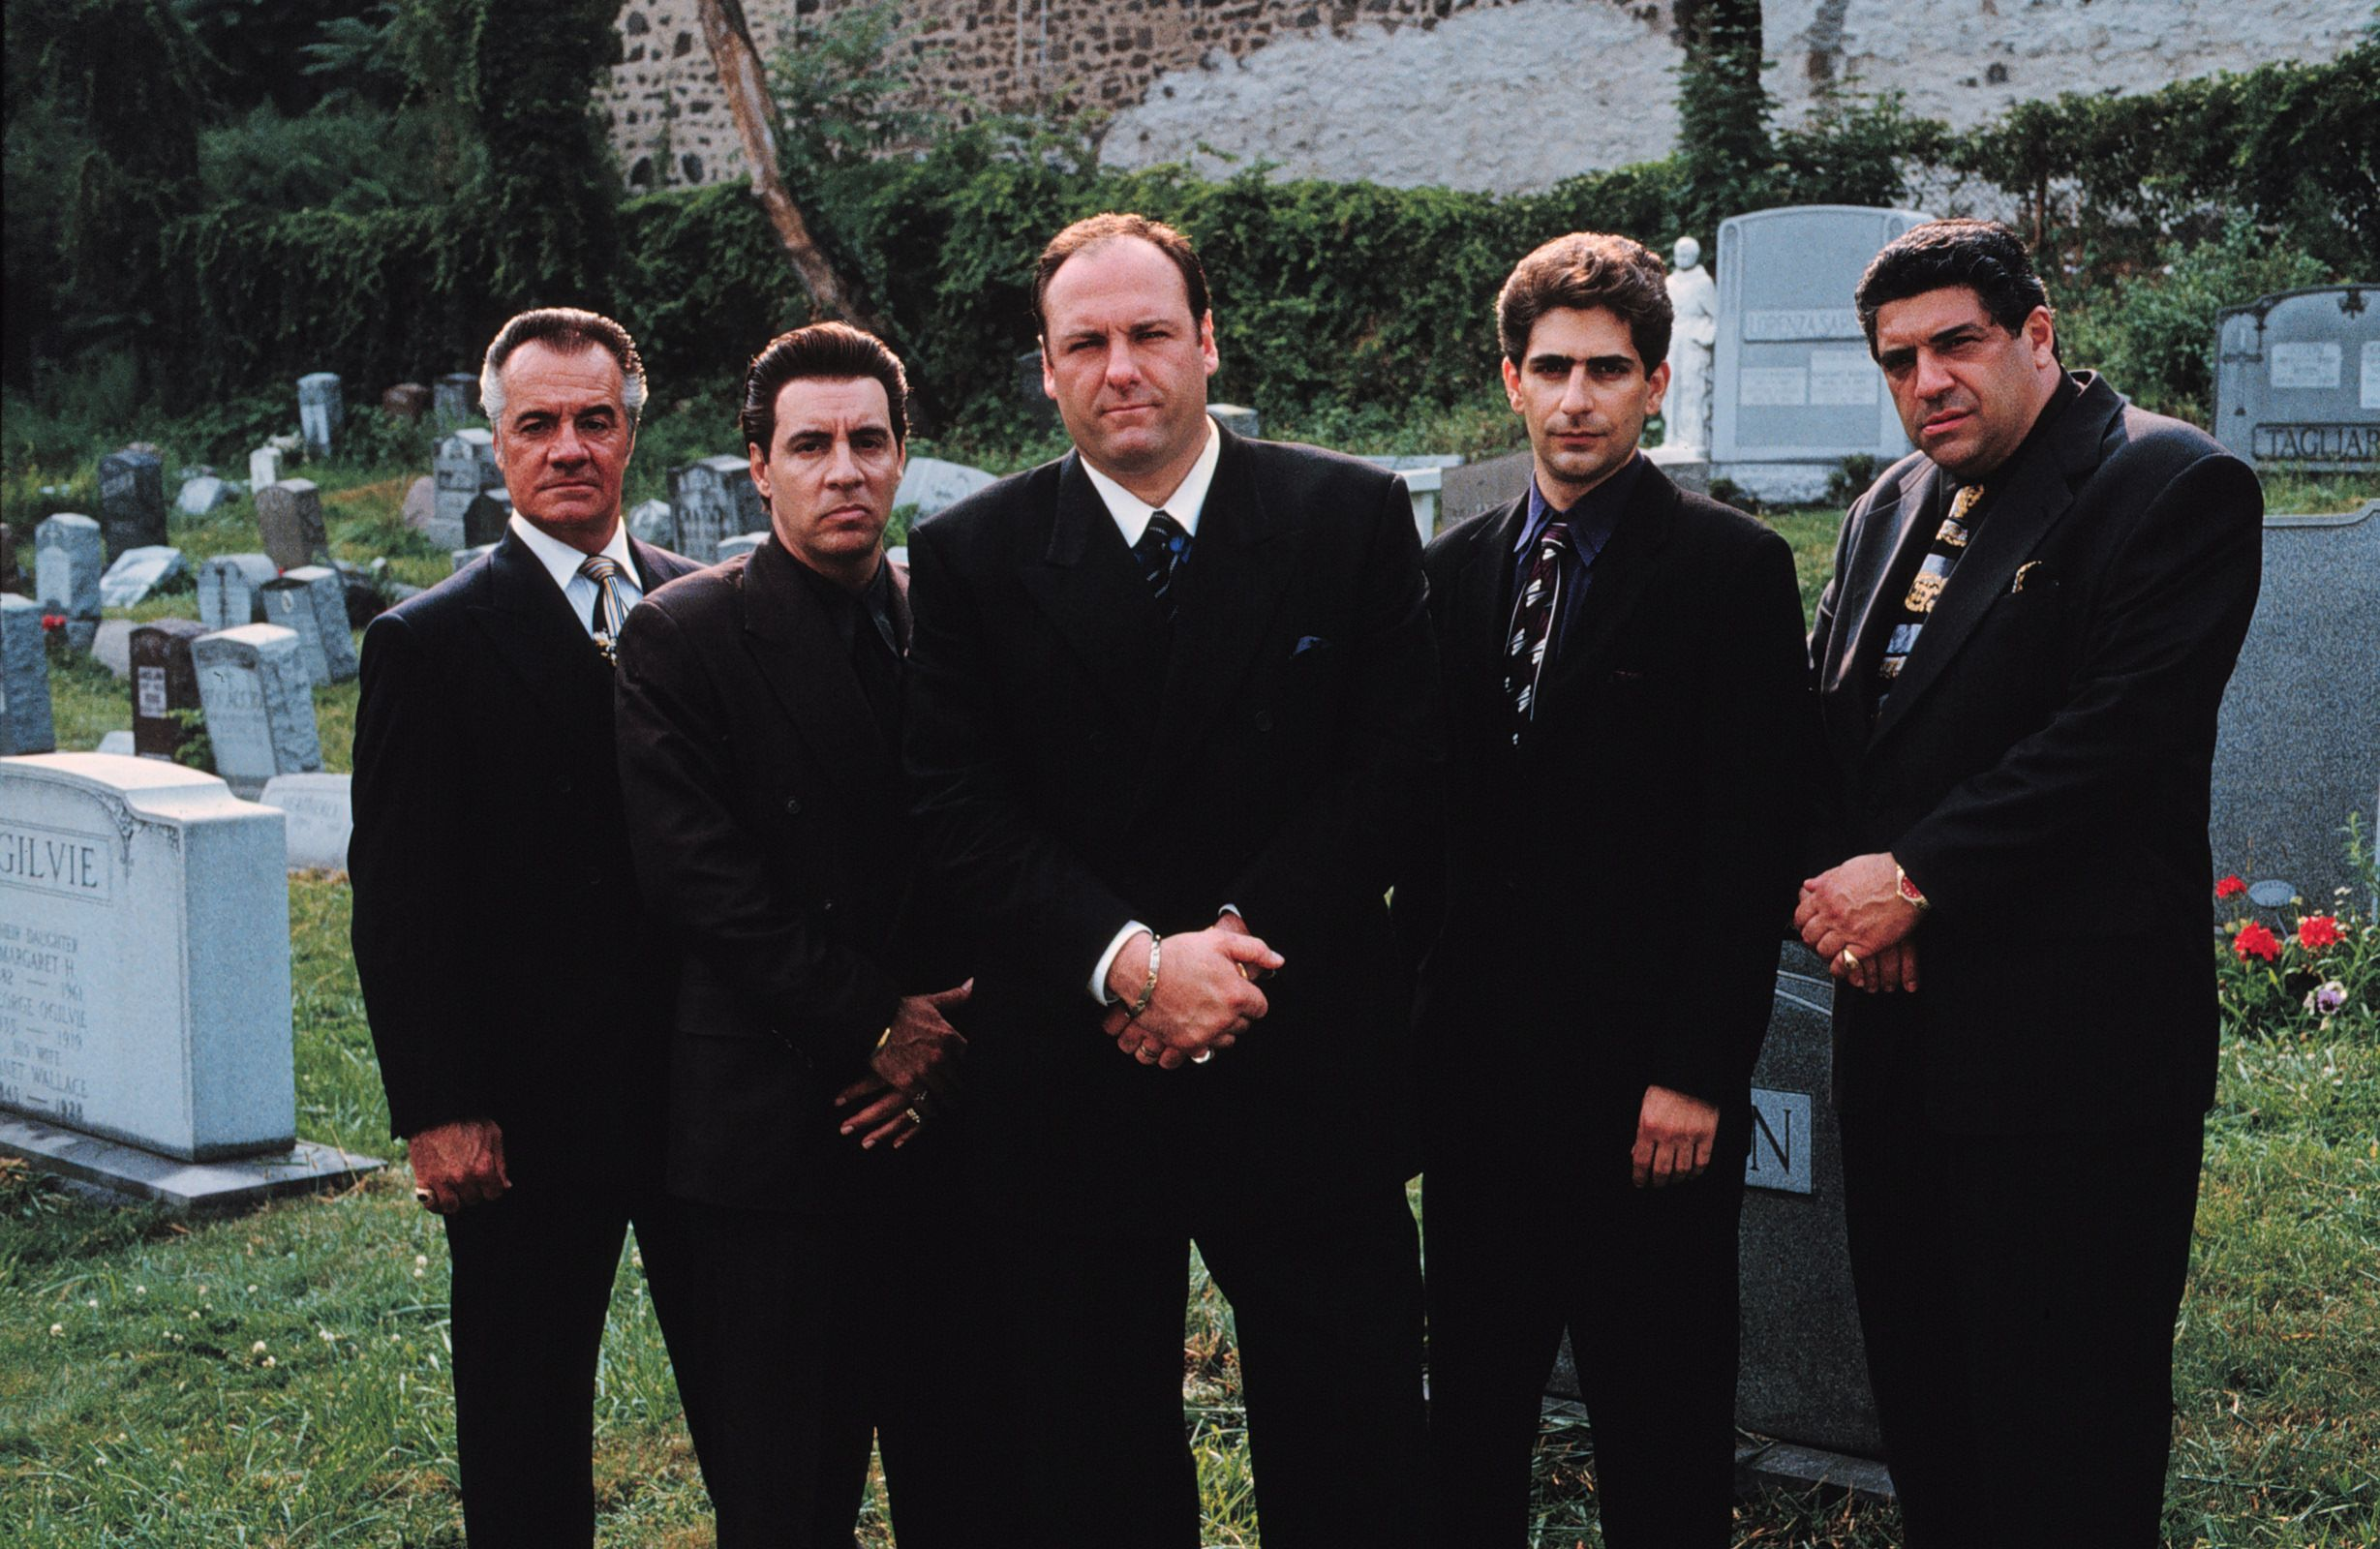 """From left to right: Tony Sirico, Steven Van Zandt, James Gandolfini, Michael Imperioli & Vincent Pastore in a publicity still for HBO's """"The Sopranos""""   Photo: Anthony Neste/Getty Images"""